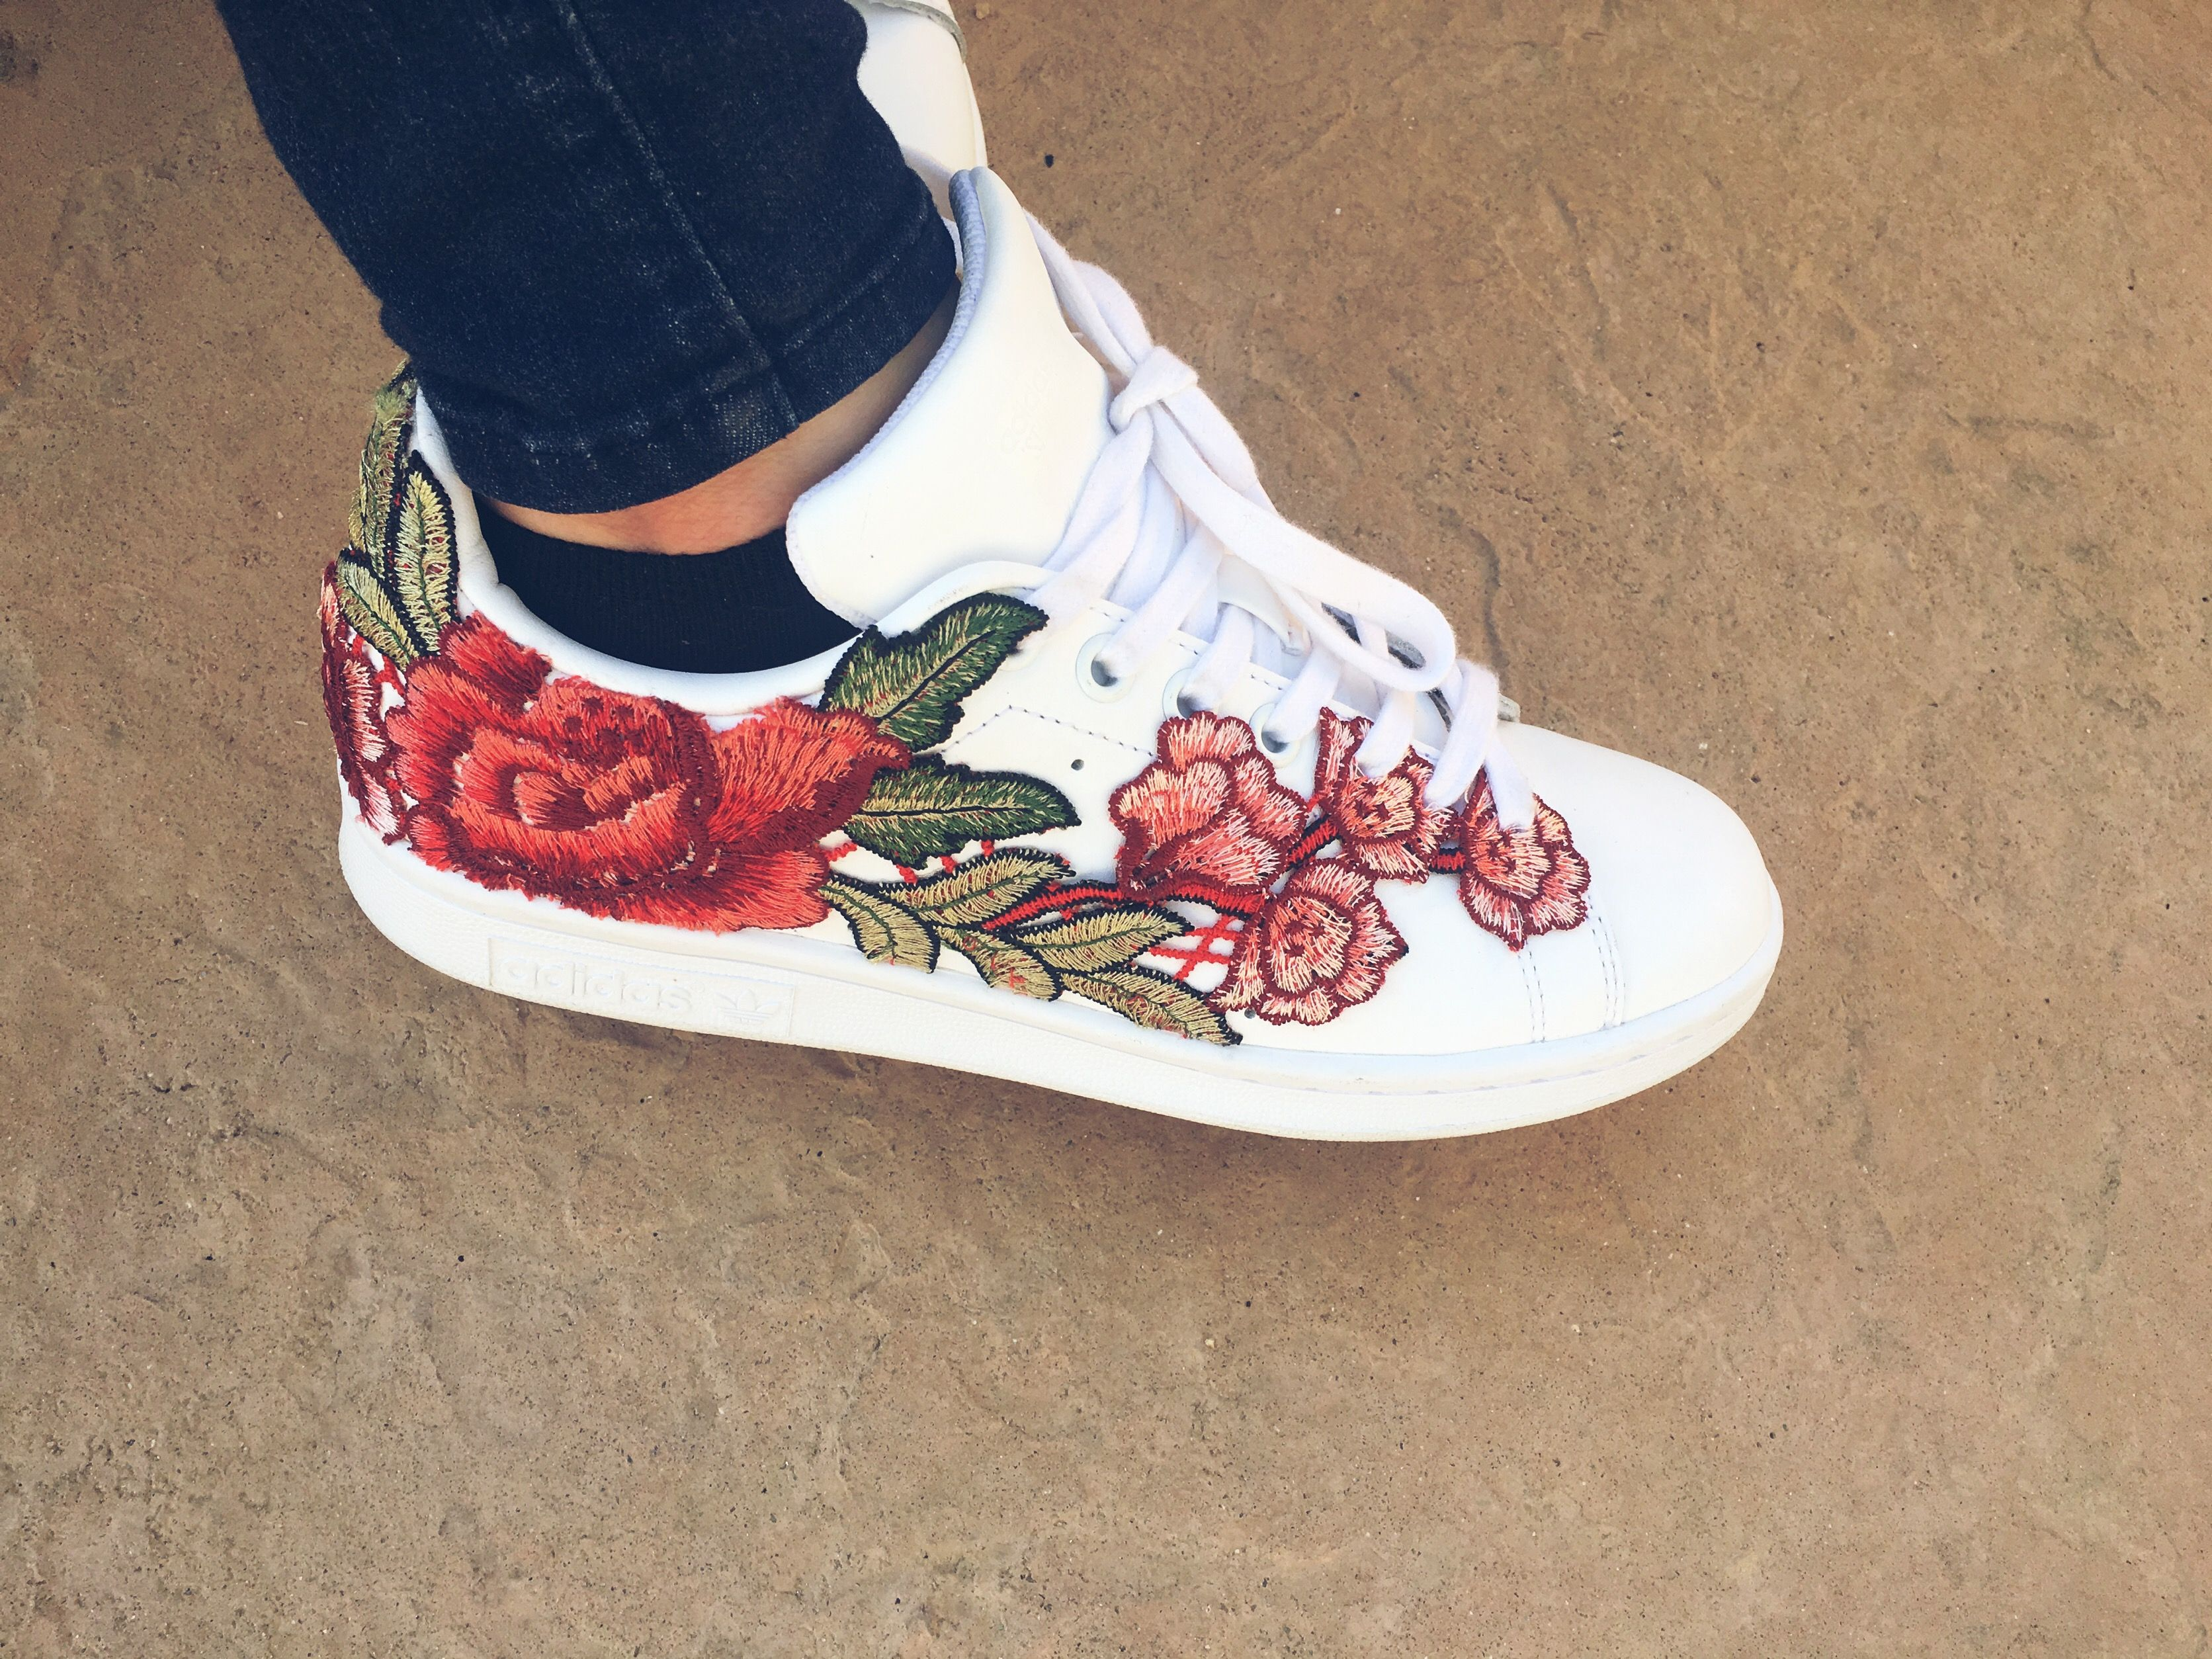 Rose embroidered adidas❣ purchase on Etsy @RebCOShop